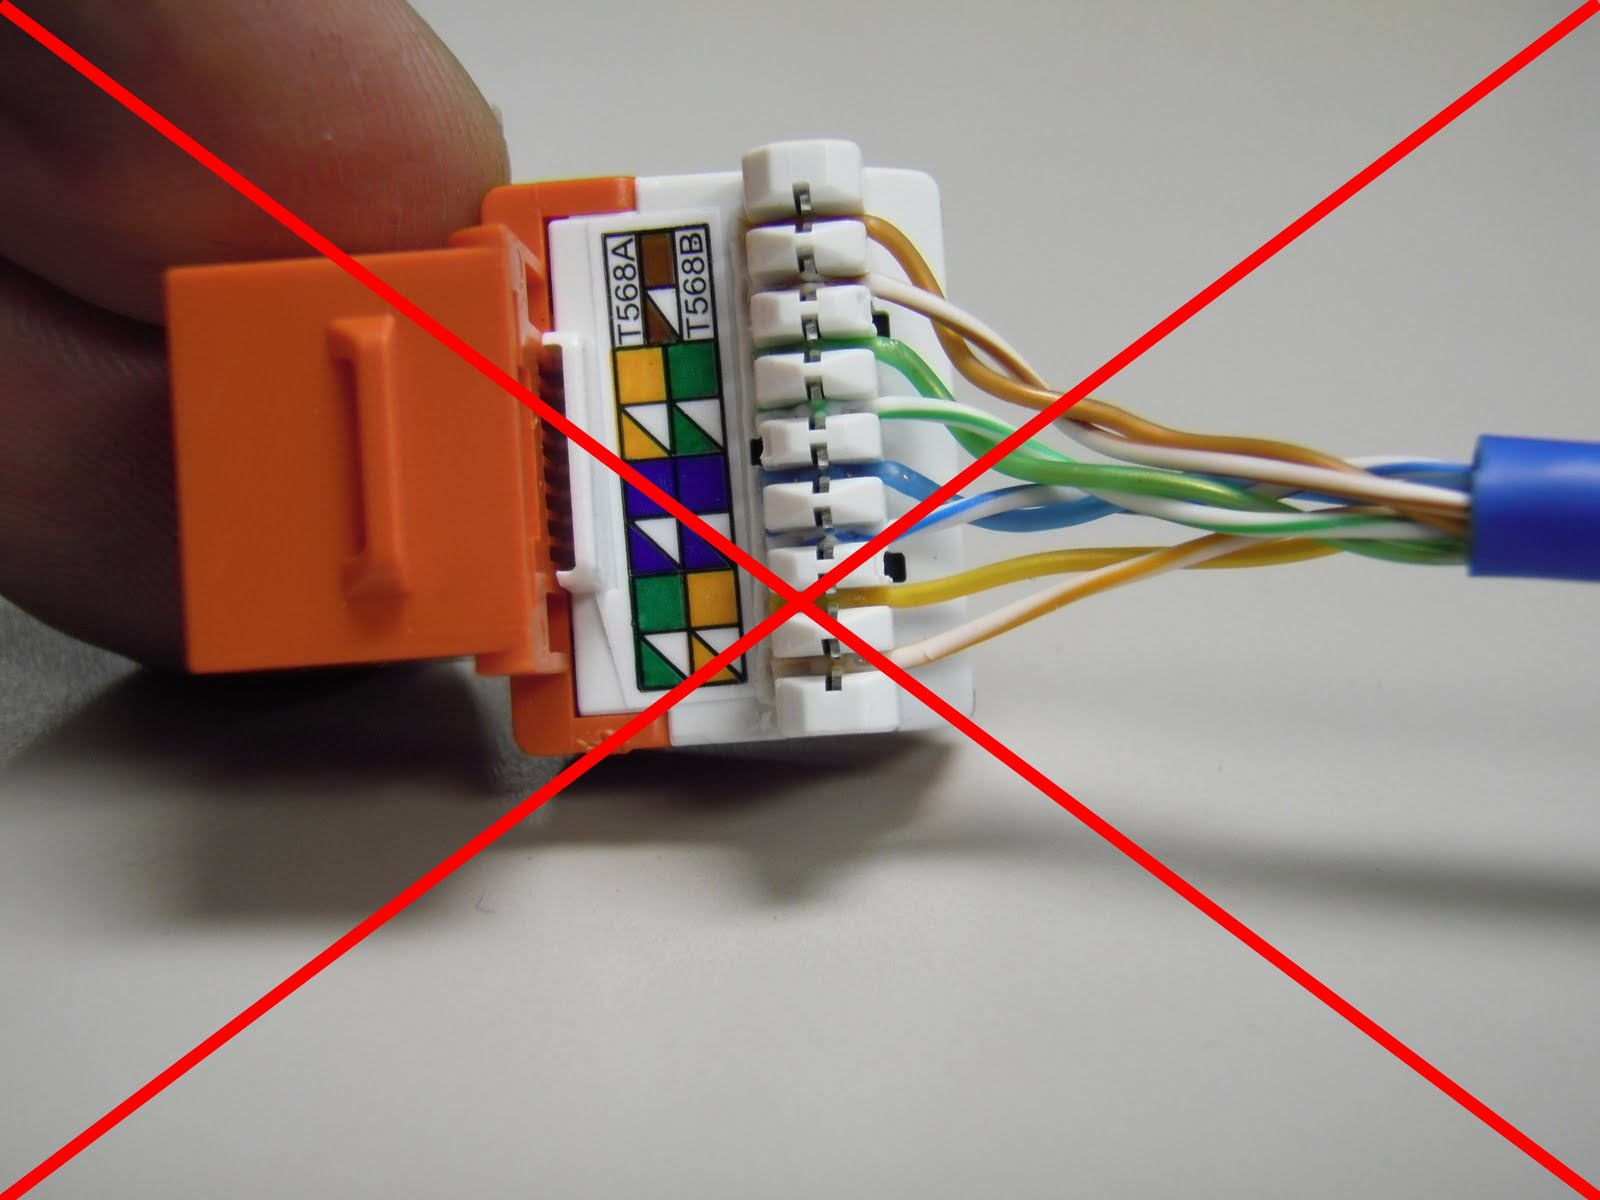 CAT5E+ER+JACK+PUNCHED+WRONG+RED+X the trench how to punch down cat5e cat6 keystone jacks ethernet wall jack wiring diagram at mifinder.co